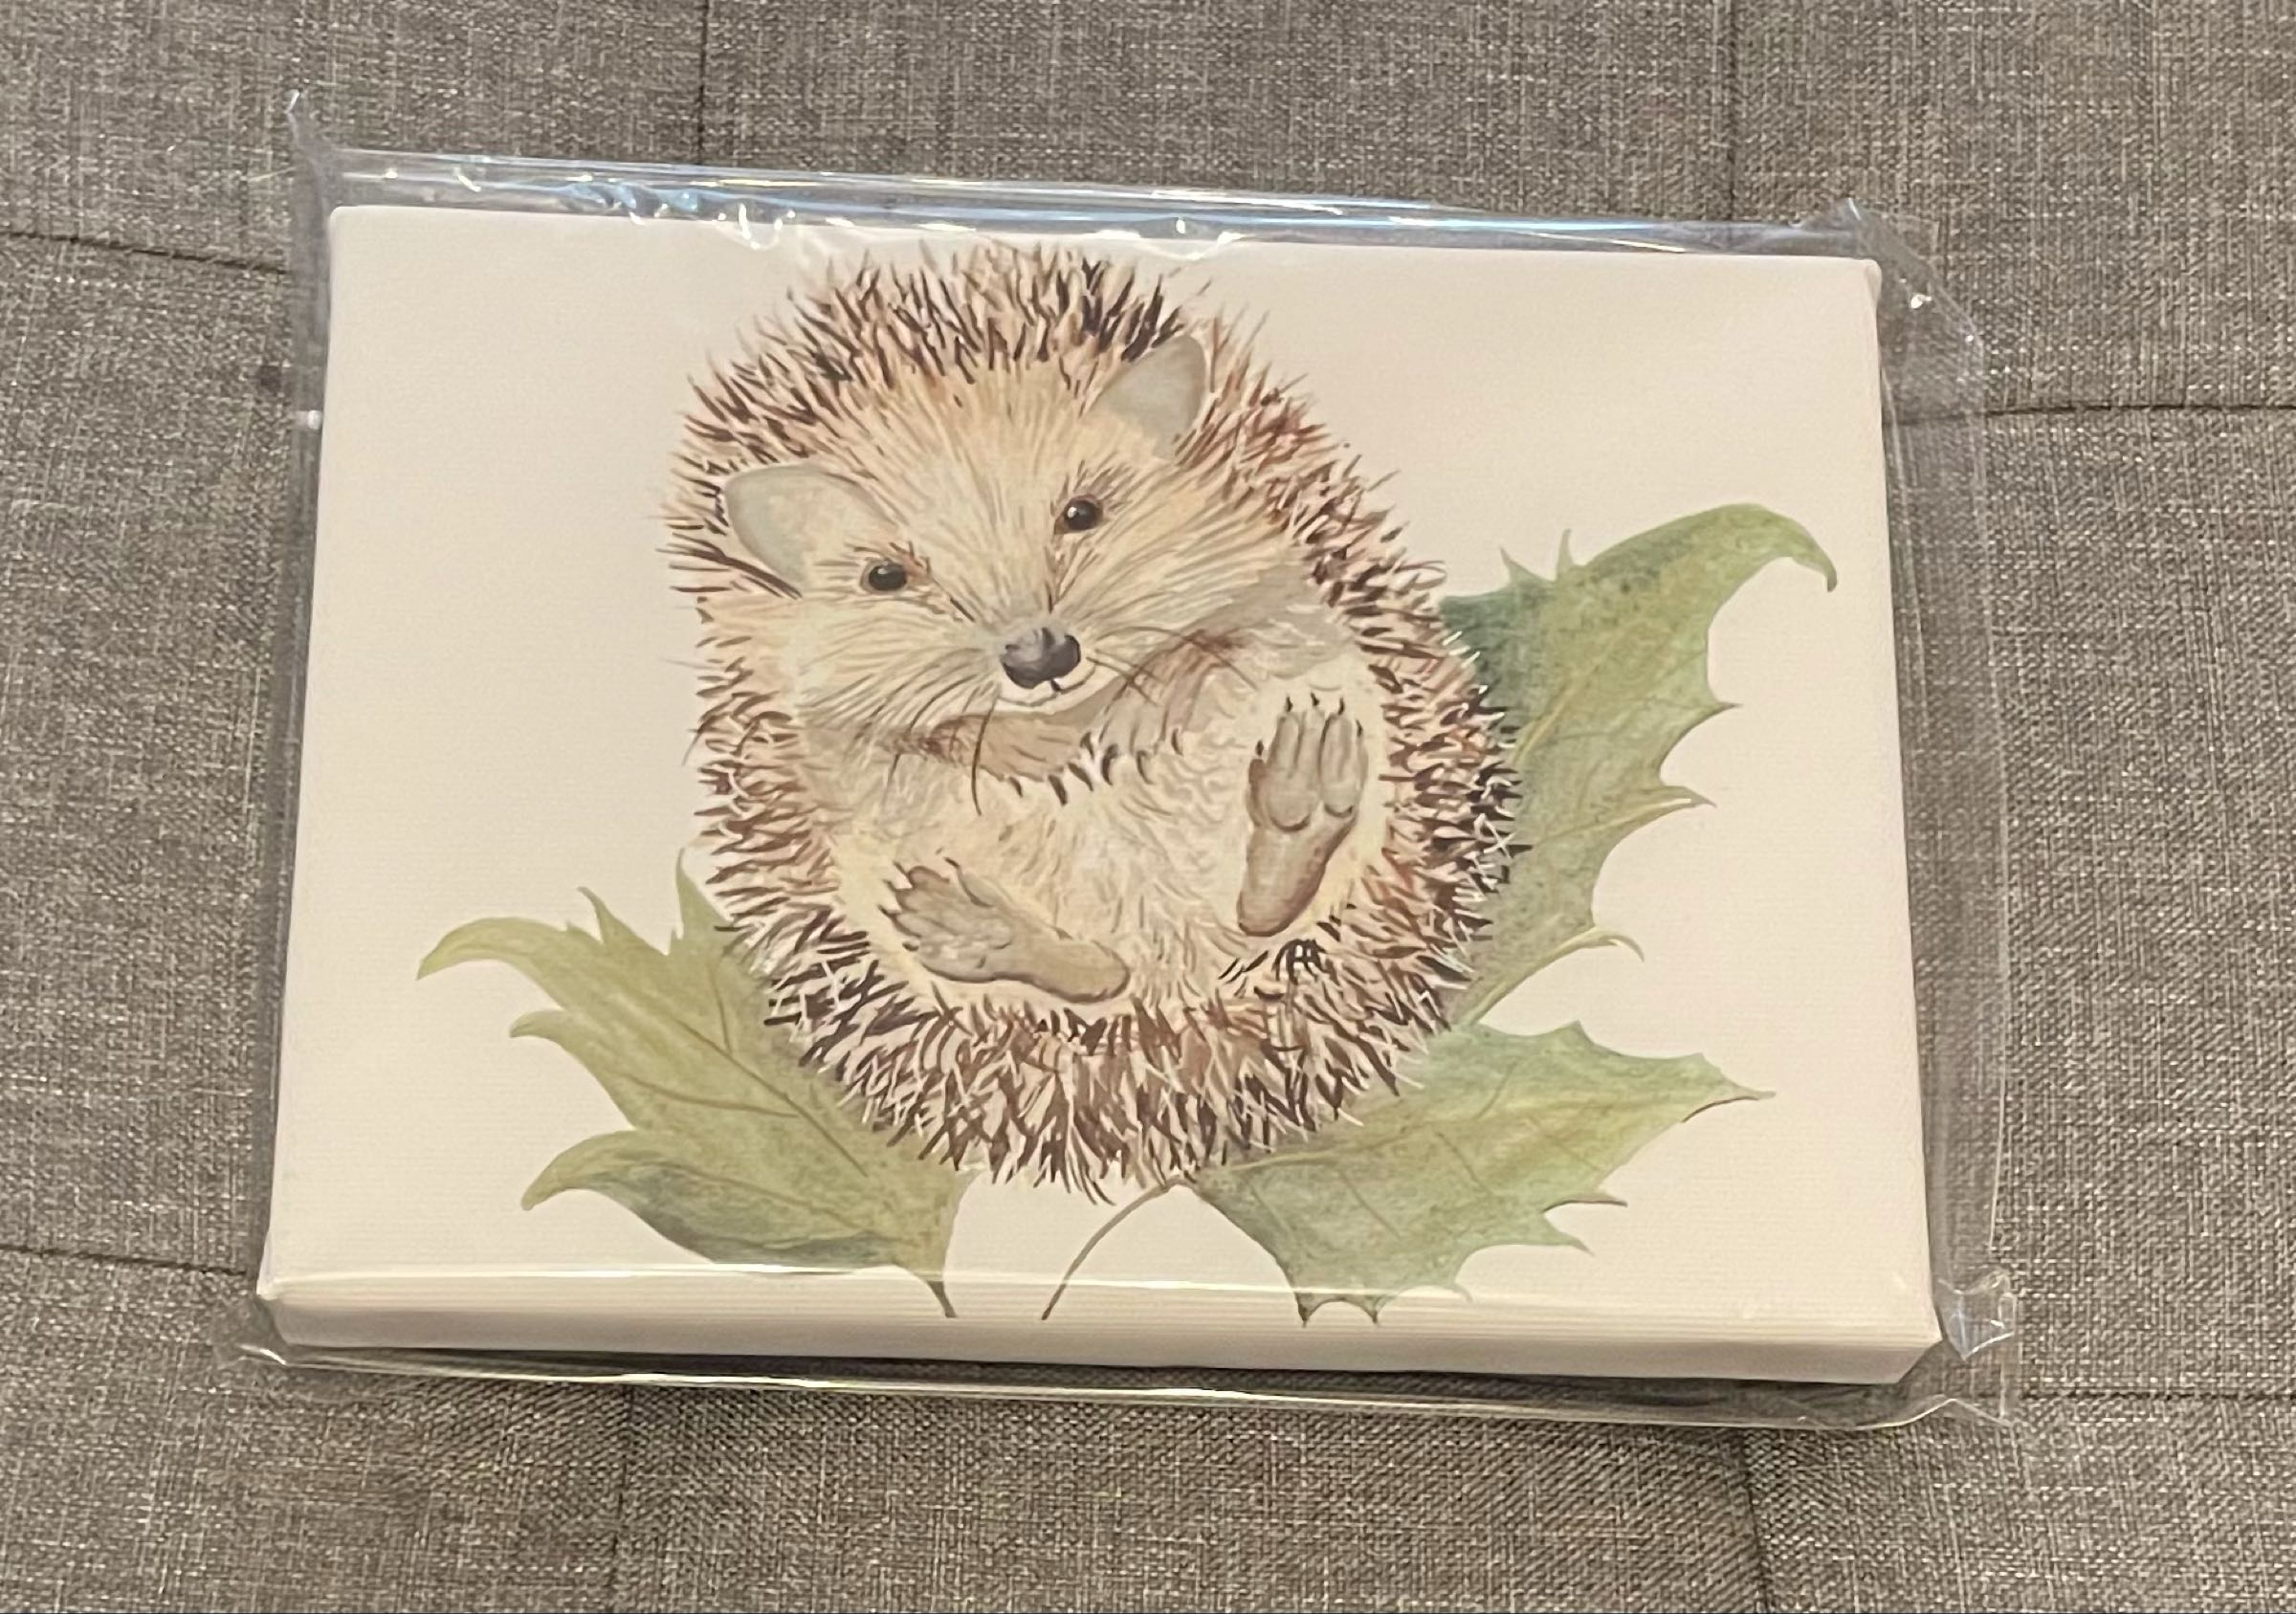 Mr Prickles Hedgehog Canvas by Sarah Reilly 15cmx21cm